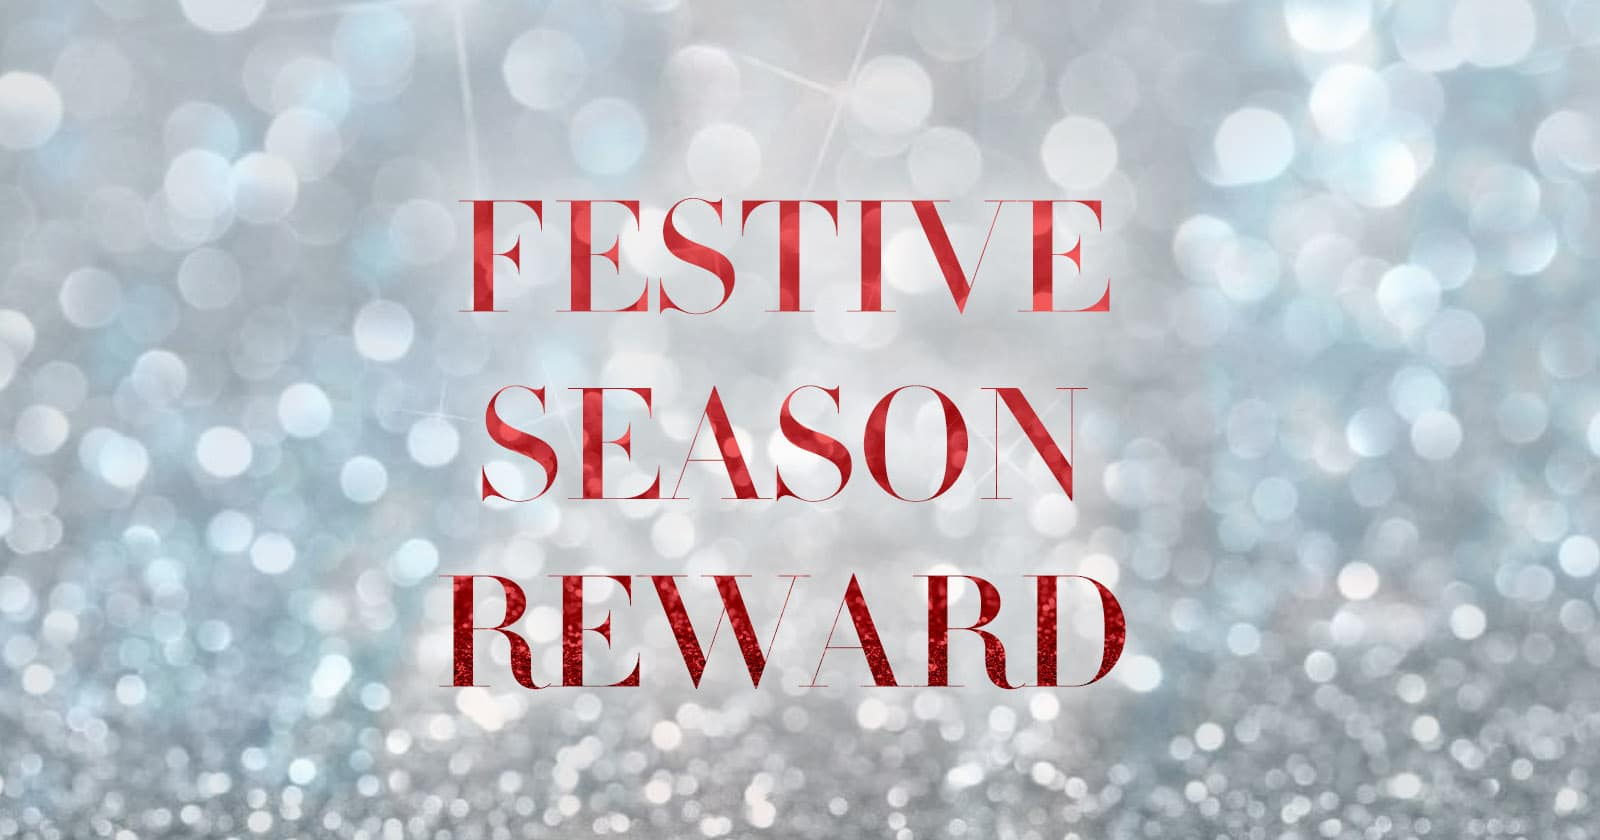 Festive Season Reward 2